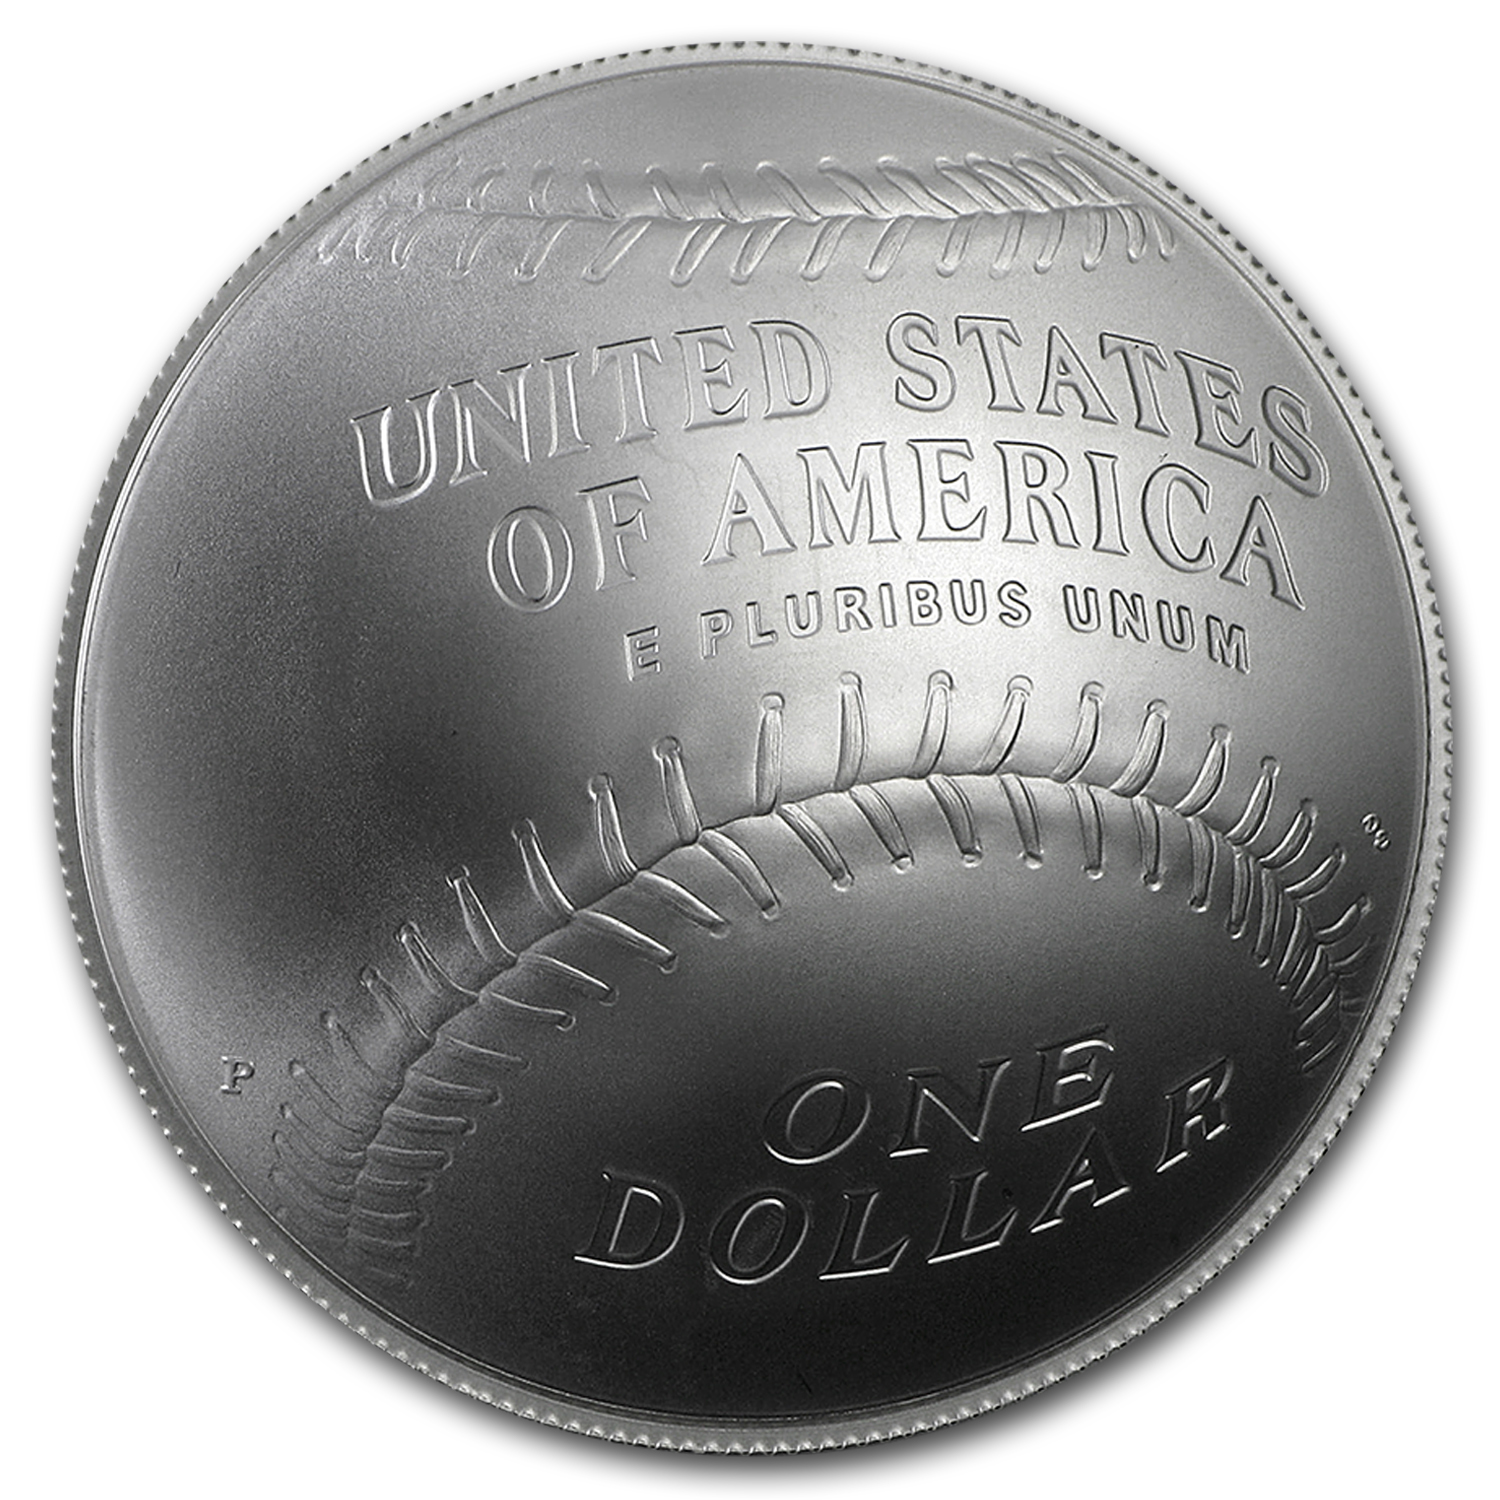 2014-P Baseball HOF - $1 Silver Commem -Uncirculated w/ Box & COA